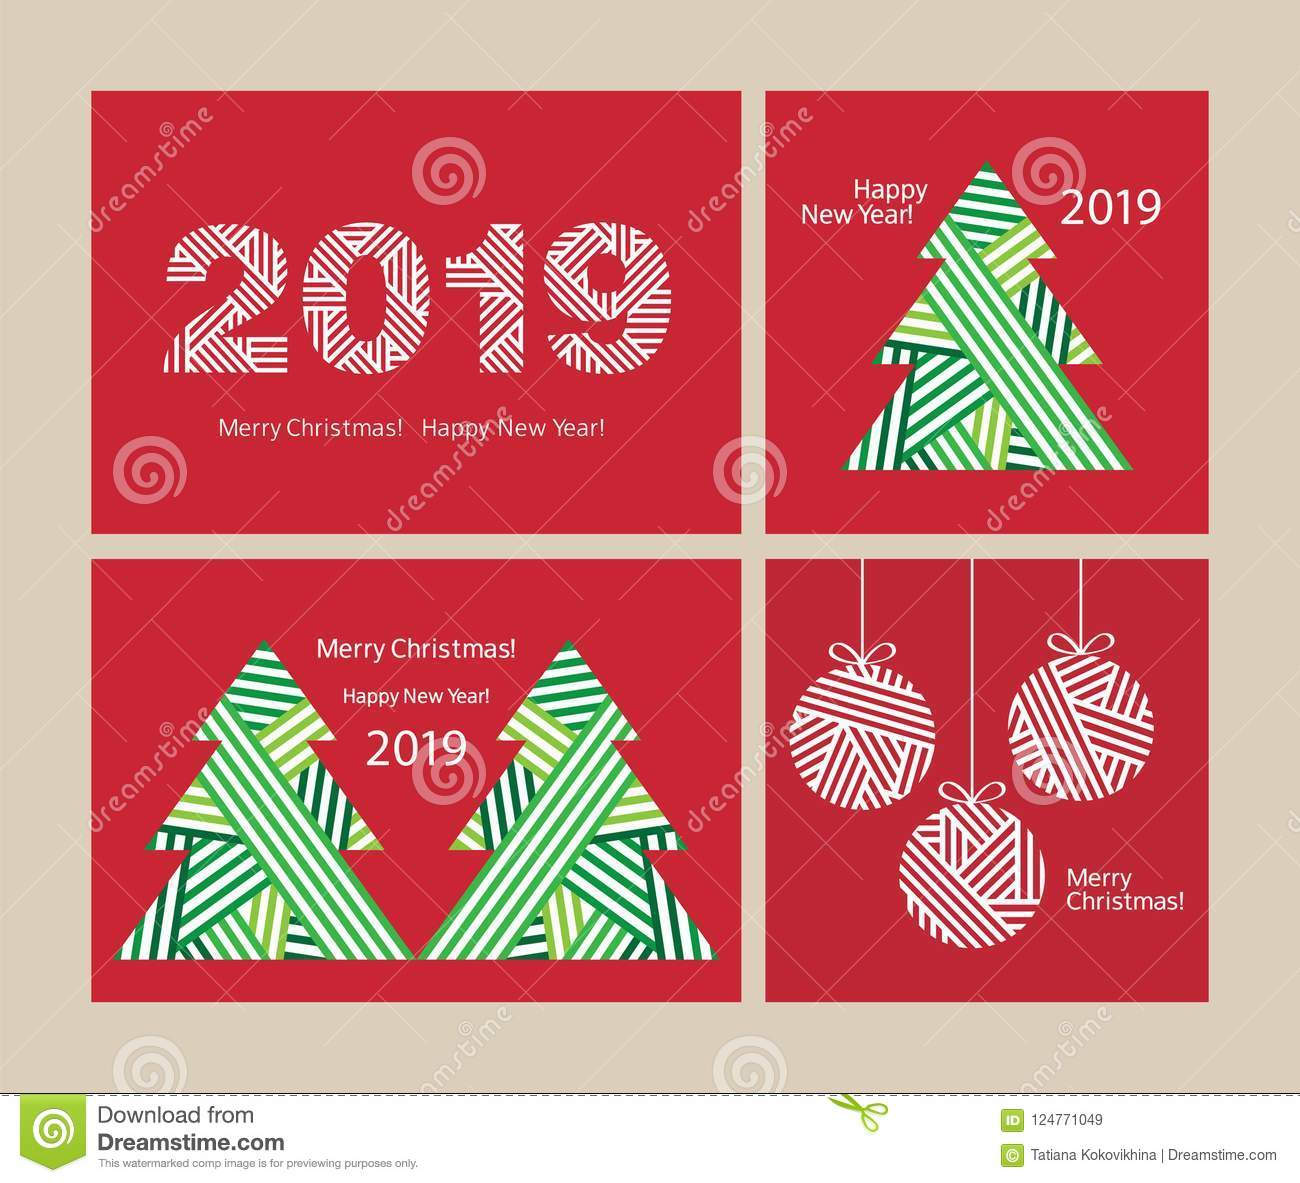 set of creative 4 christmas cards happy new year 2019